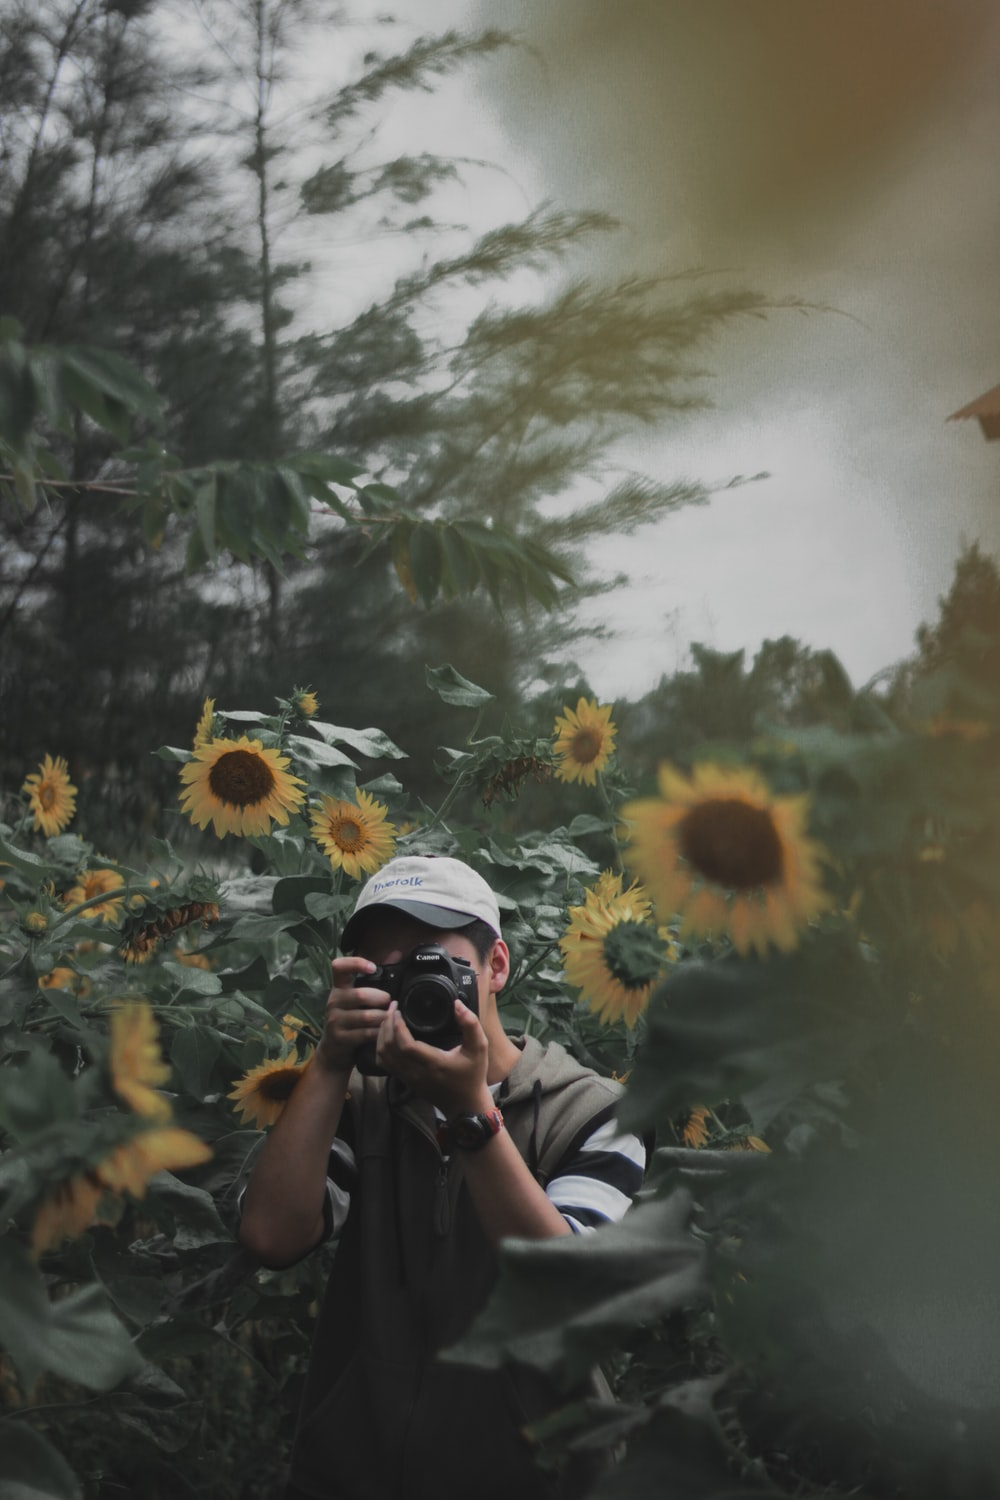 person using DSLR camera surrounded bu sunflowers